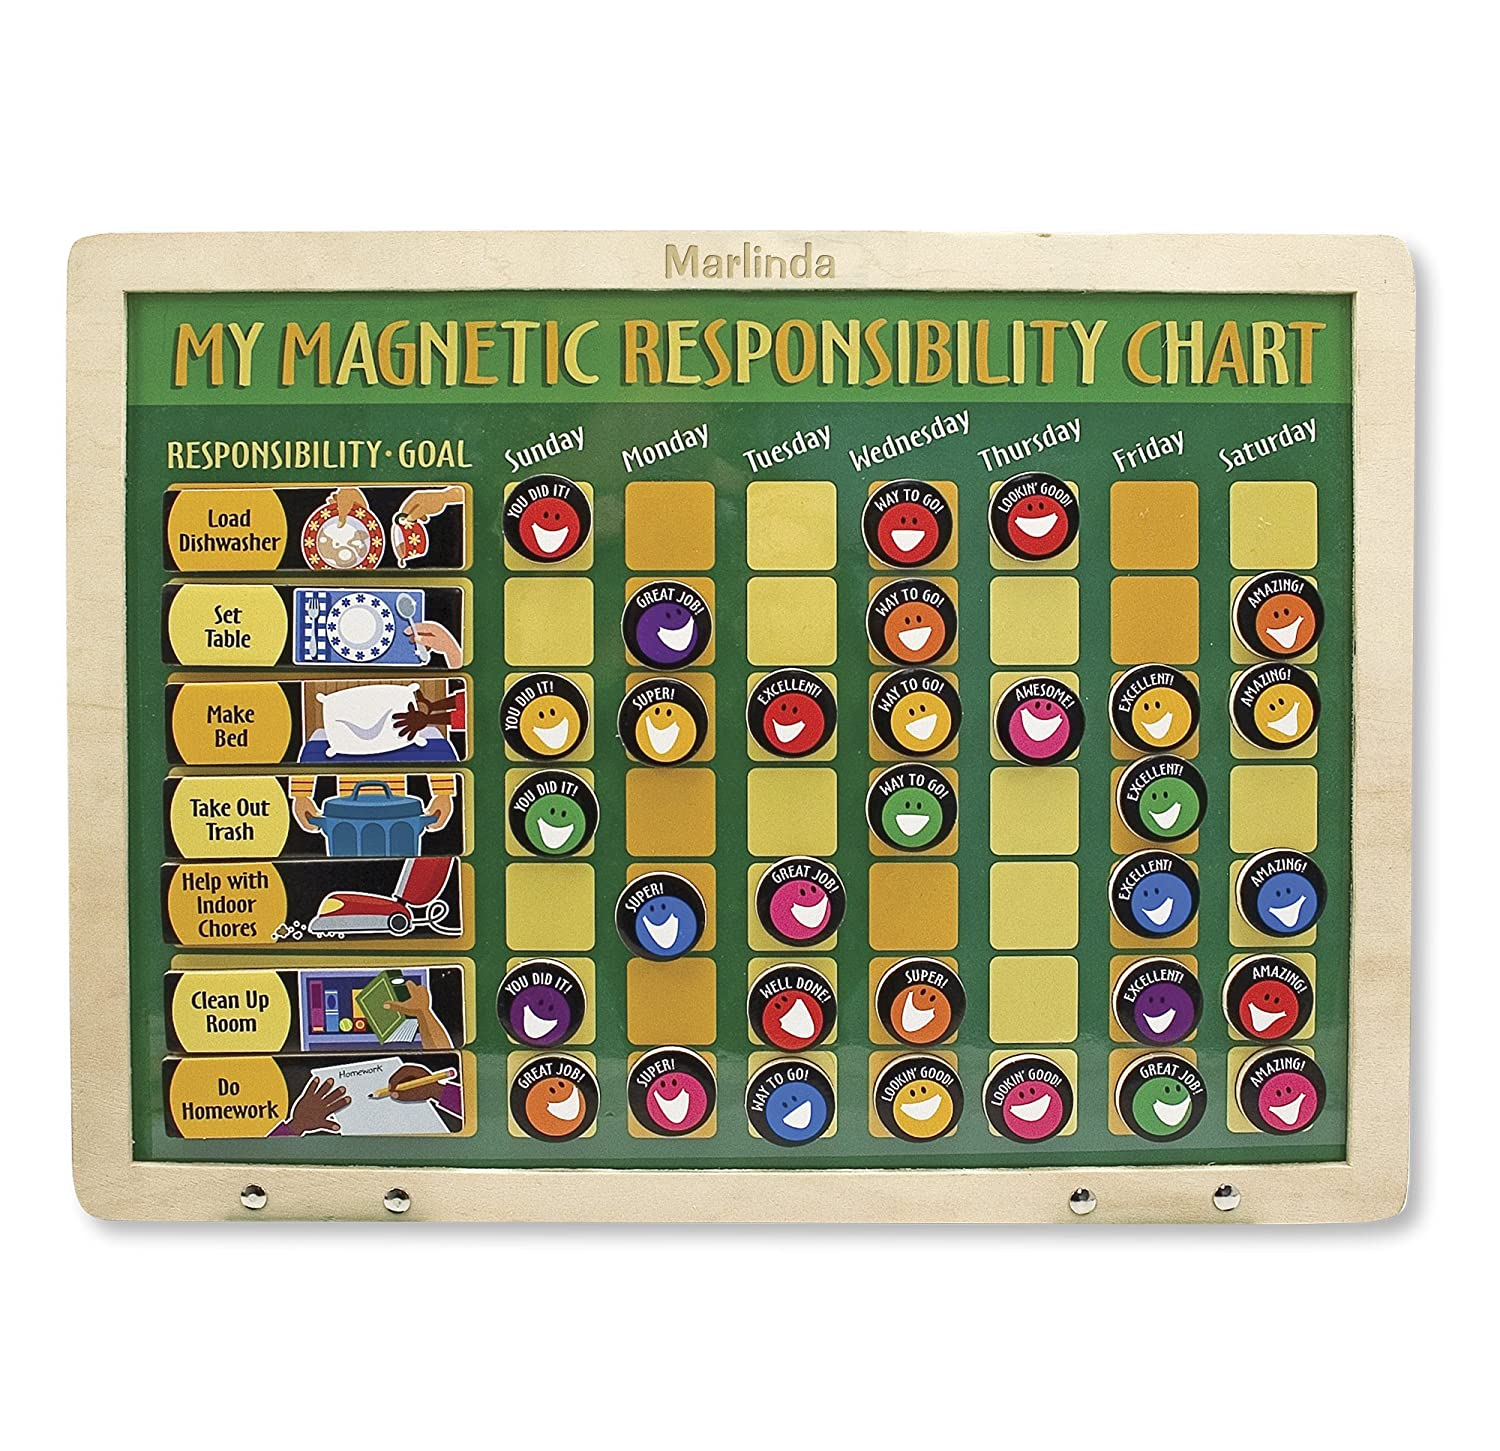 Melissa & Doug Deluxe Wooden Magnetic Responsibility Chart With 90 Magnets 3789